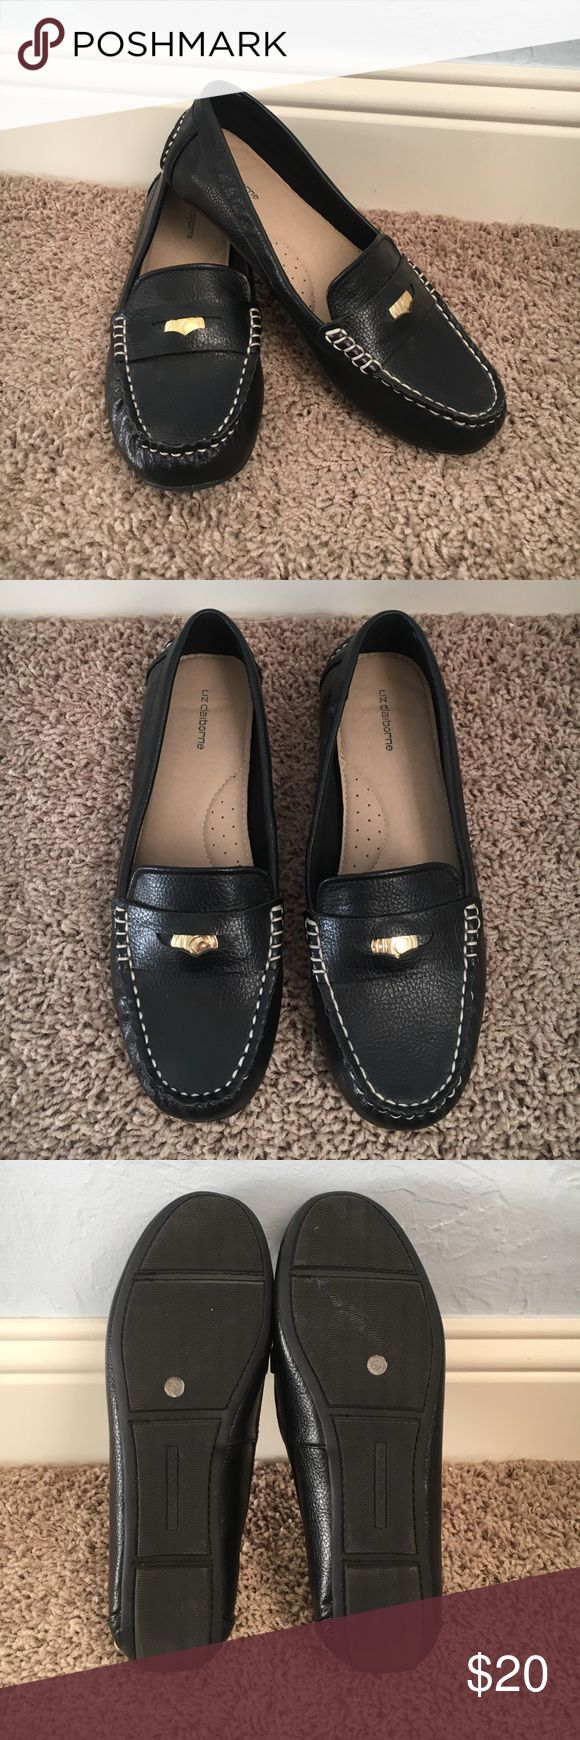 Liz Claiborne driving loafers, 7 1/2 Worn once, too small for me. Excellent condition, appropriate for work attire or casual dress. Liz Claiborne Shoes Flats & Loafers